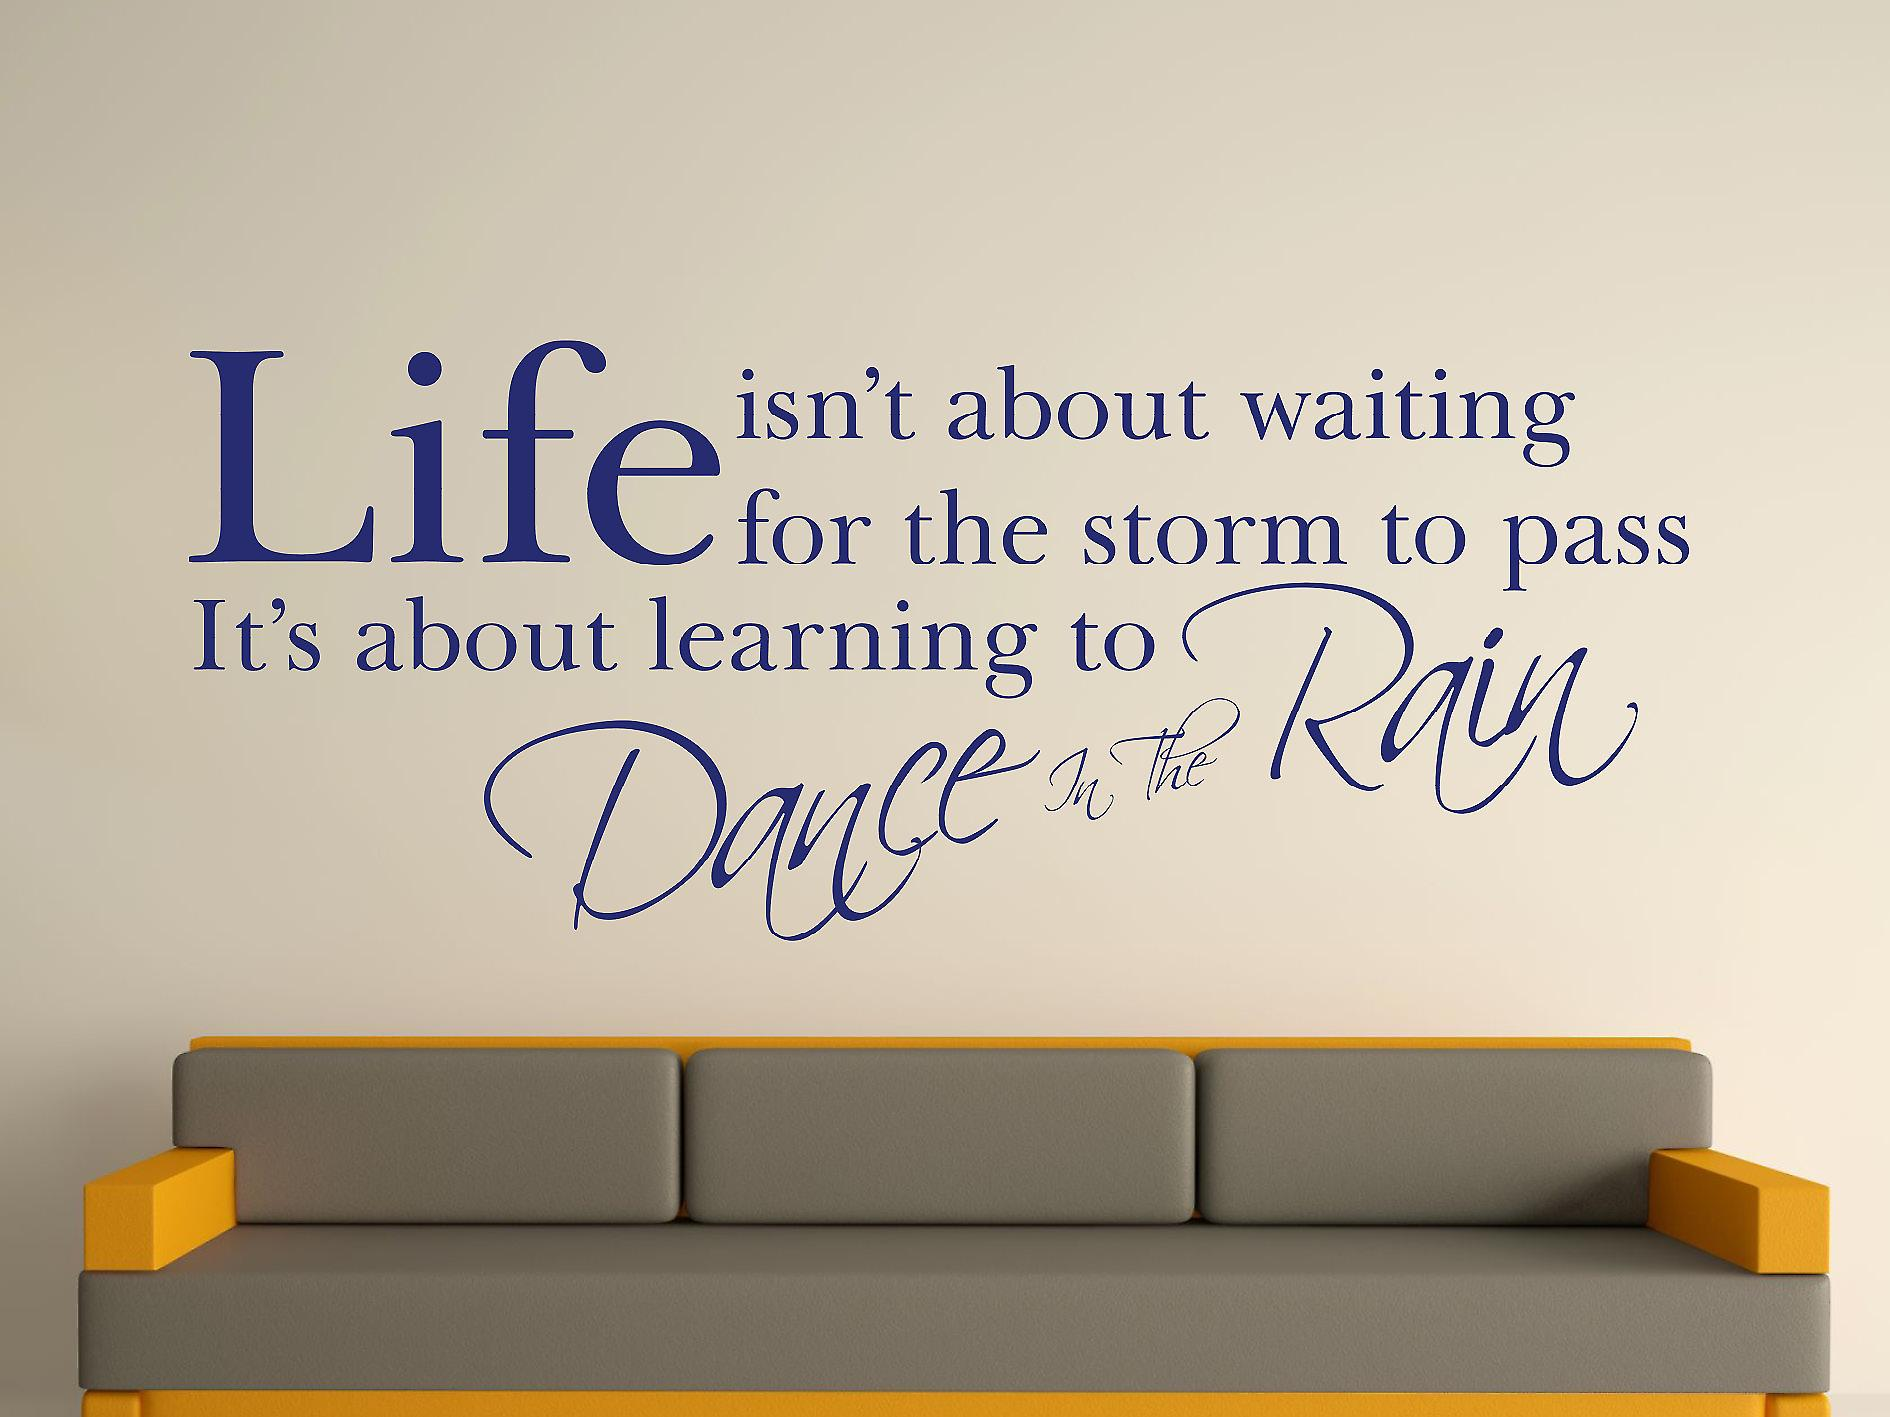 Dance In The Rain Wall Art Sticker - Ultra Blue